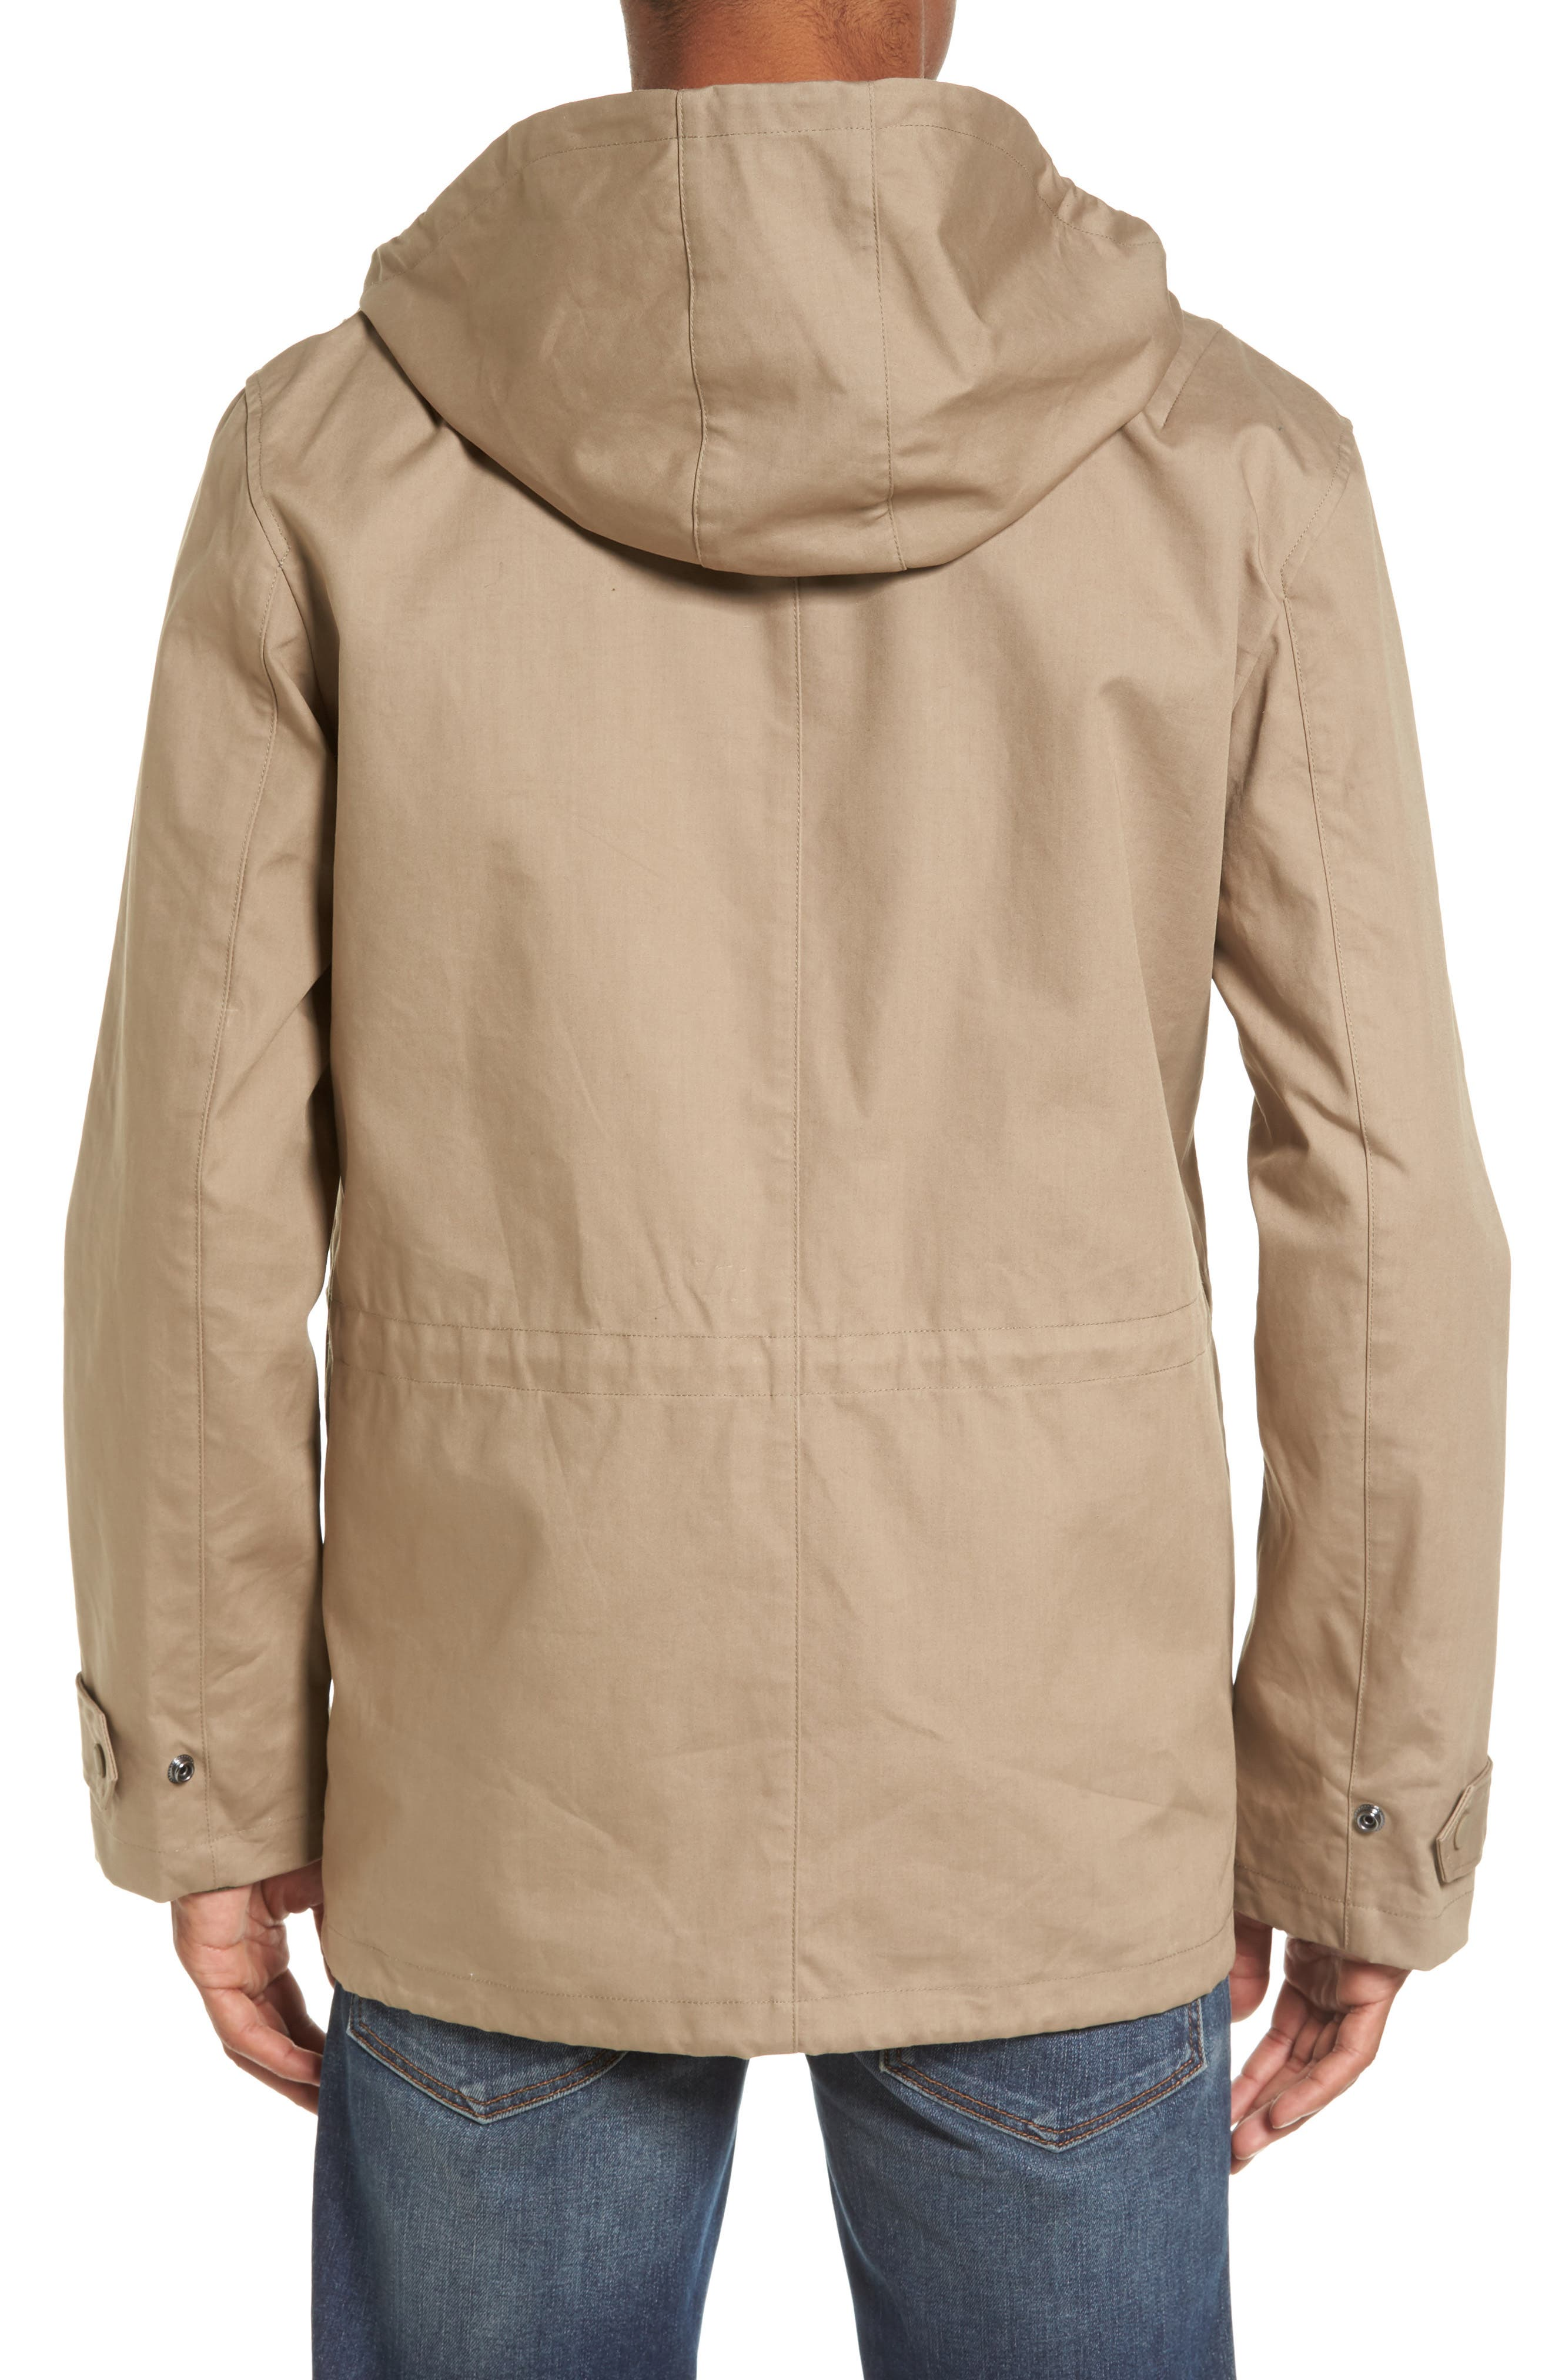 Alternate Image 2  - French Connection Regular Fit Hooded Rain Jacket